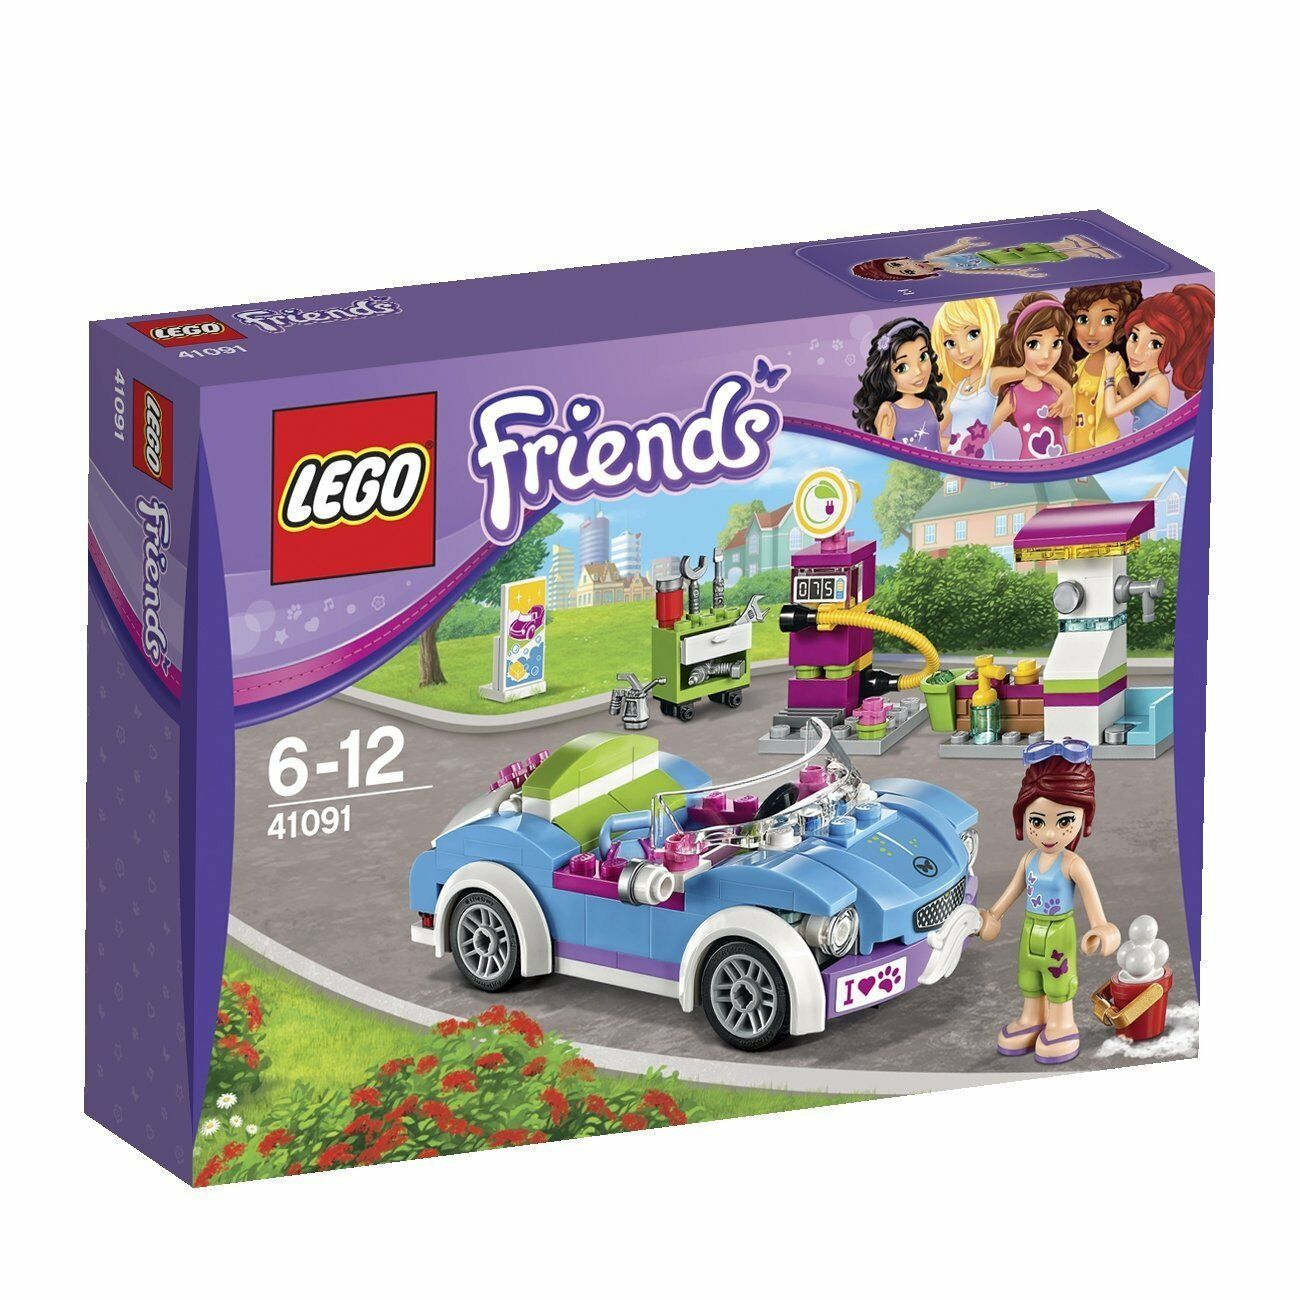 NEW Lego Friends Mia's Roadster Set 41091 Christmas gift SEALED BOX